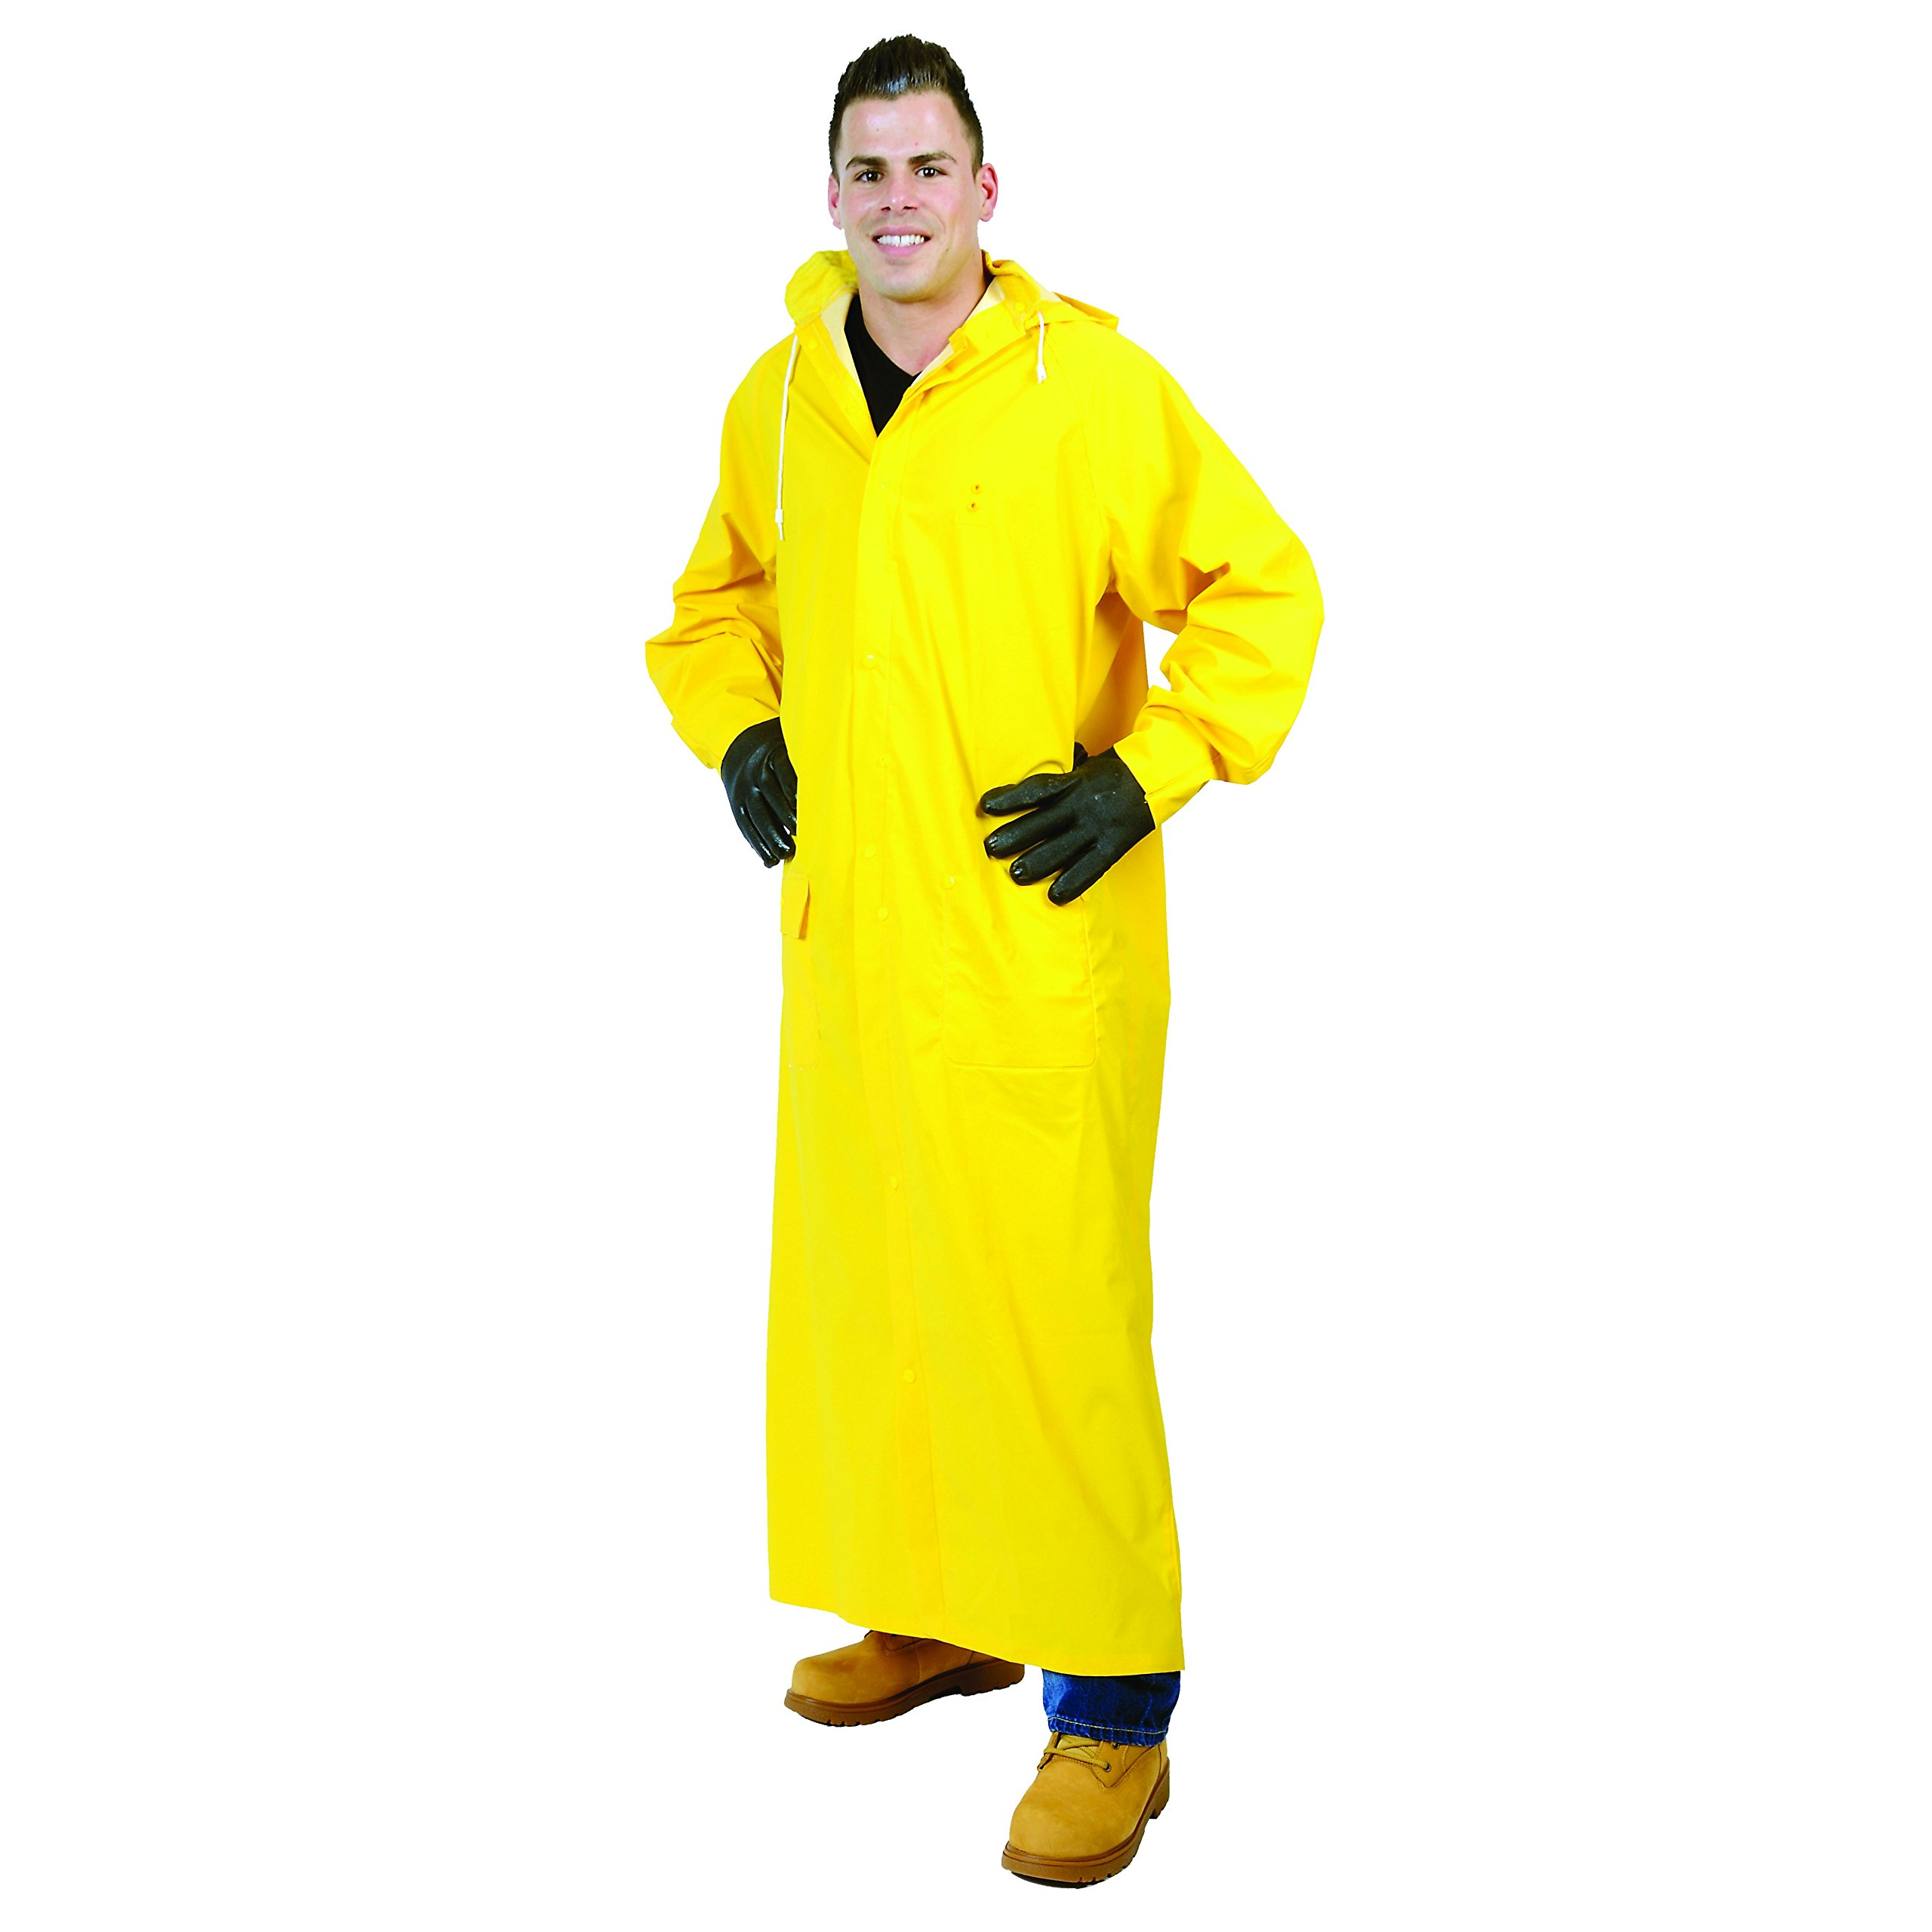 Galeton 12560-L-YW  Repel Rainwear 0.35 mm PVC 60'' Raincoat for More Coverage, Large, Yellow by Galeton